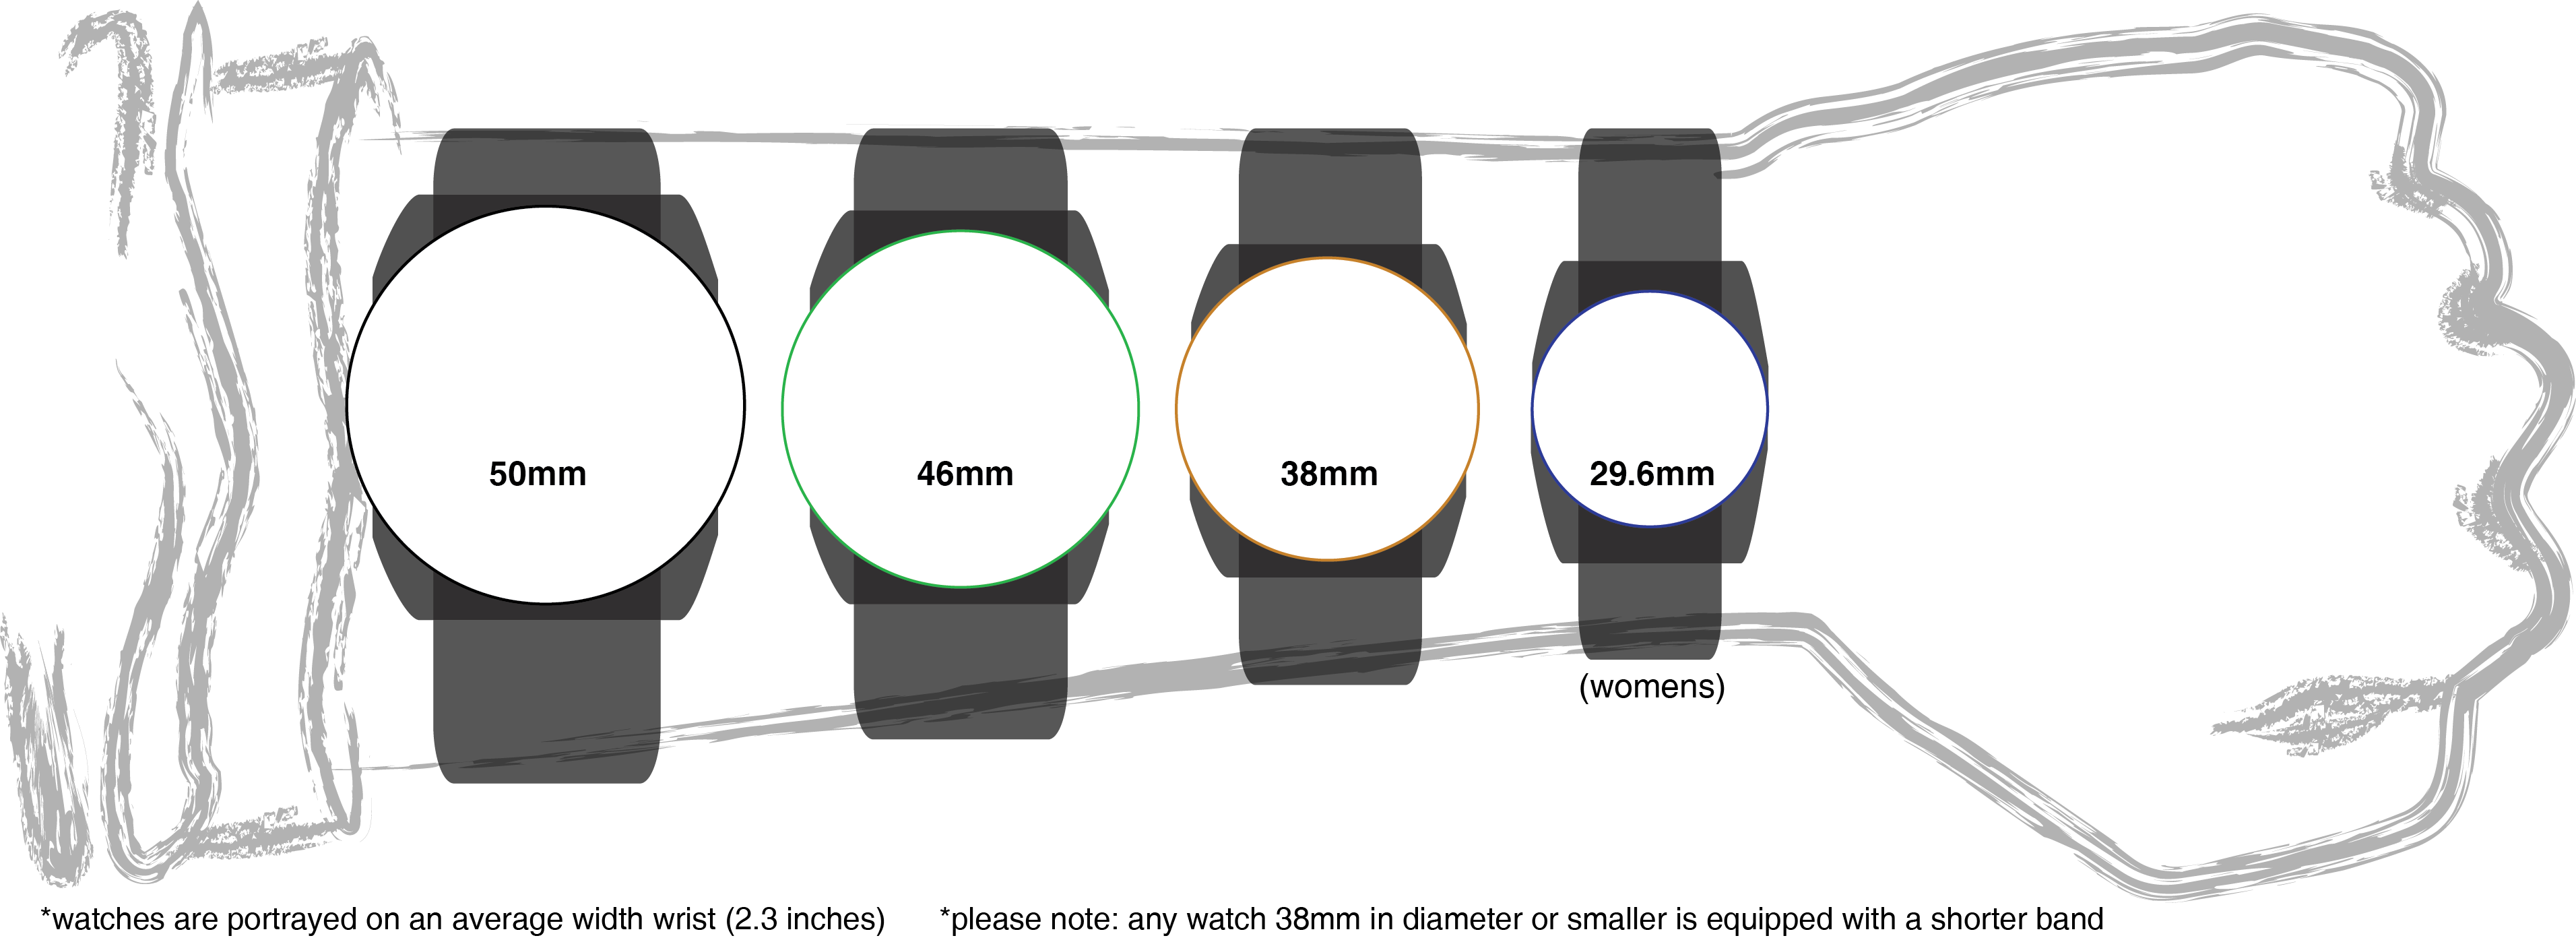 Watch Size Guide Things To Know Pinterest Watch Case